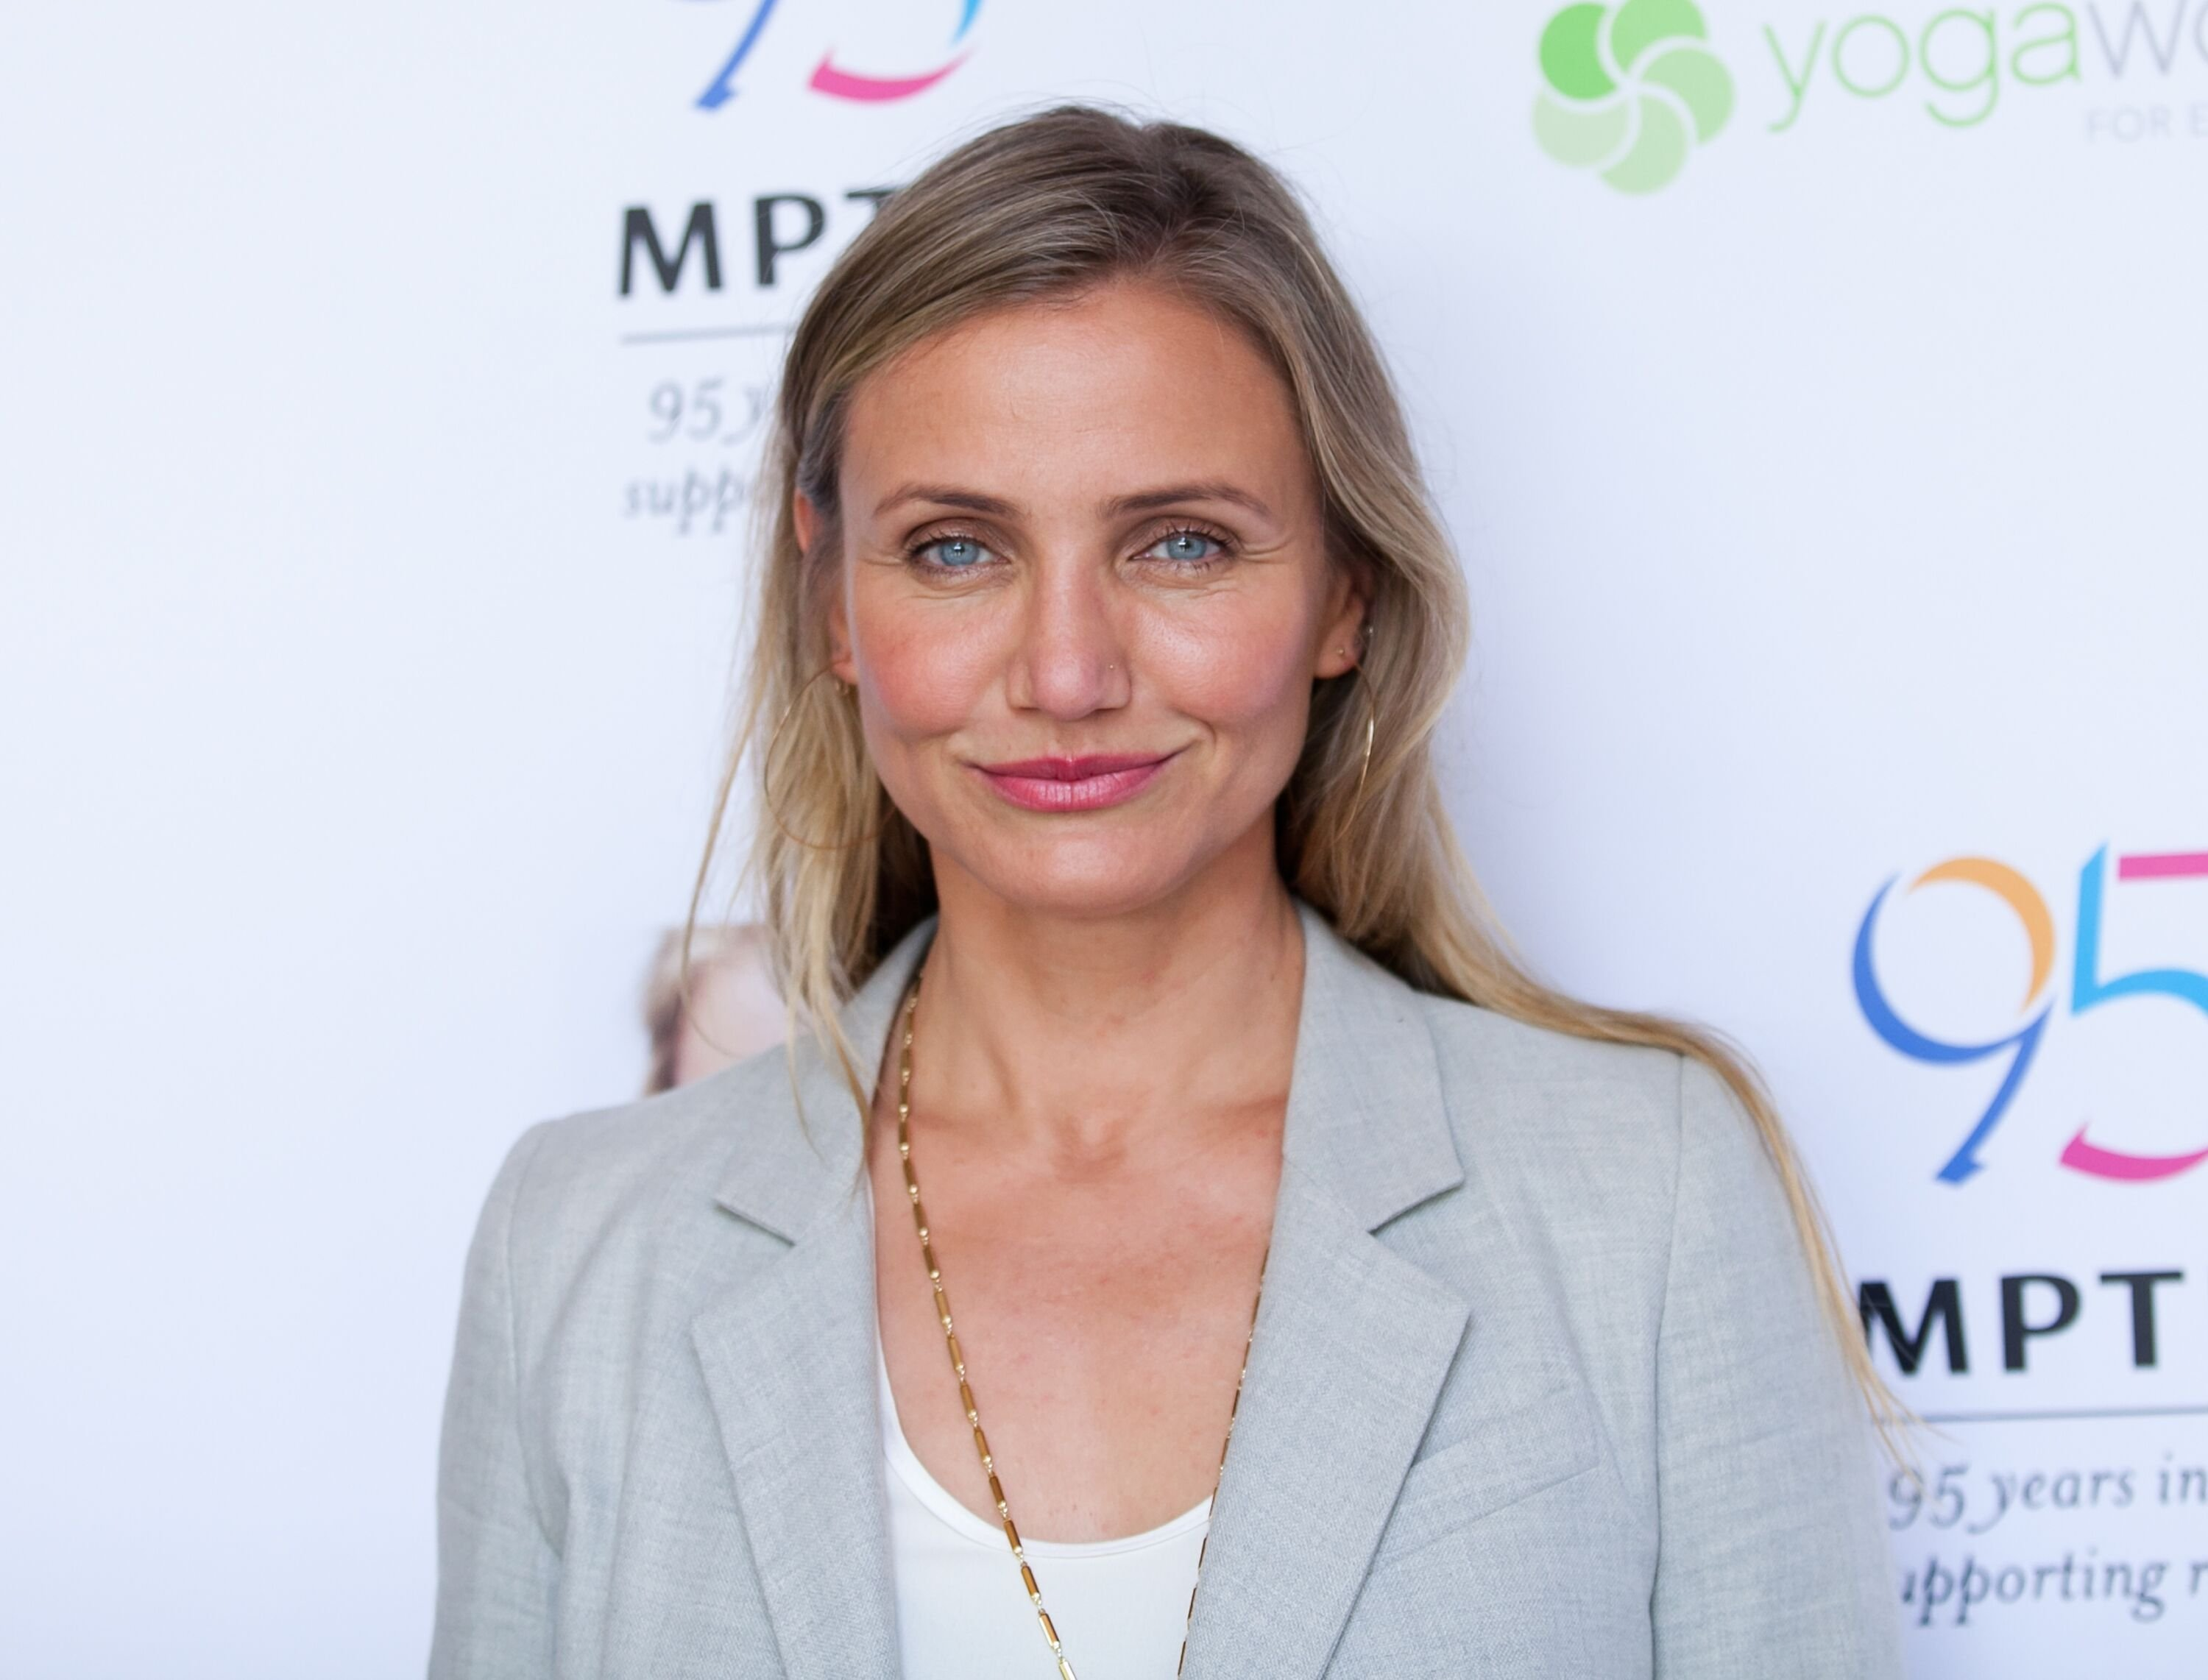 Cameron Diaz attends the MPTF Celebration for health and fitness in 2016 | Source: Getty Images